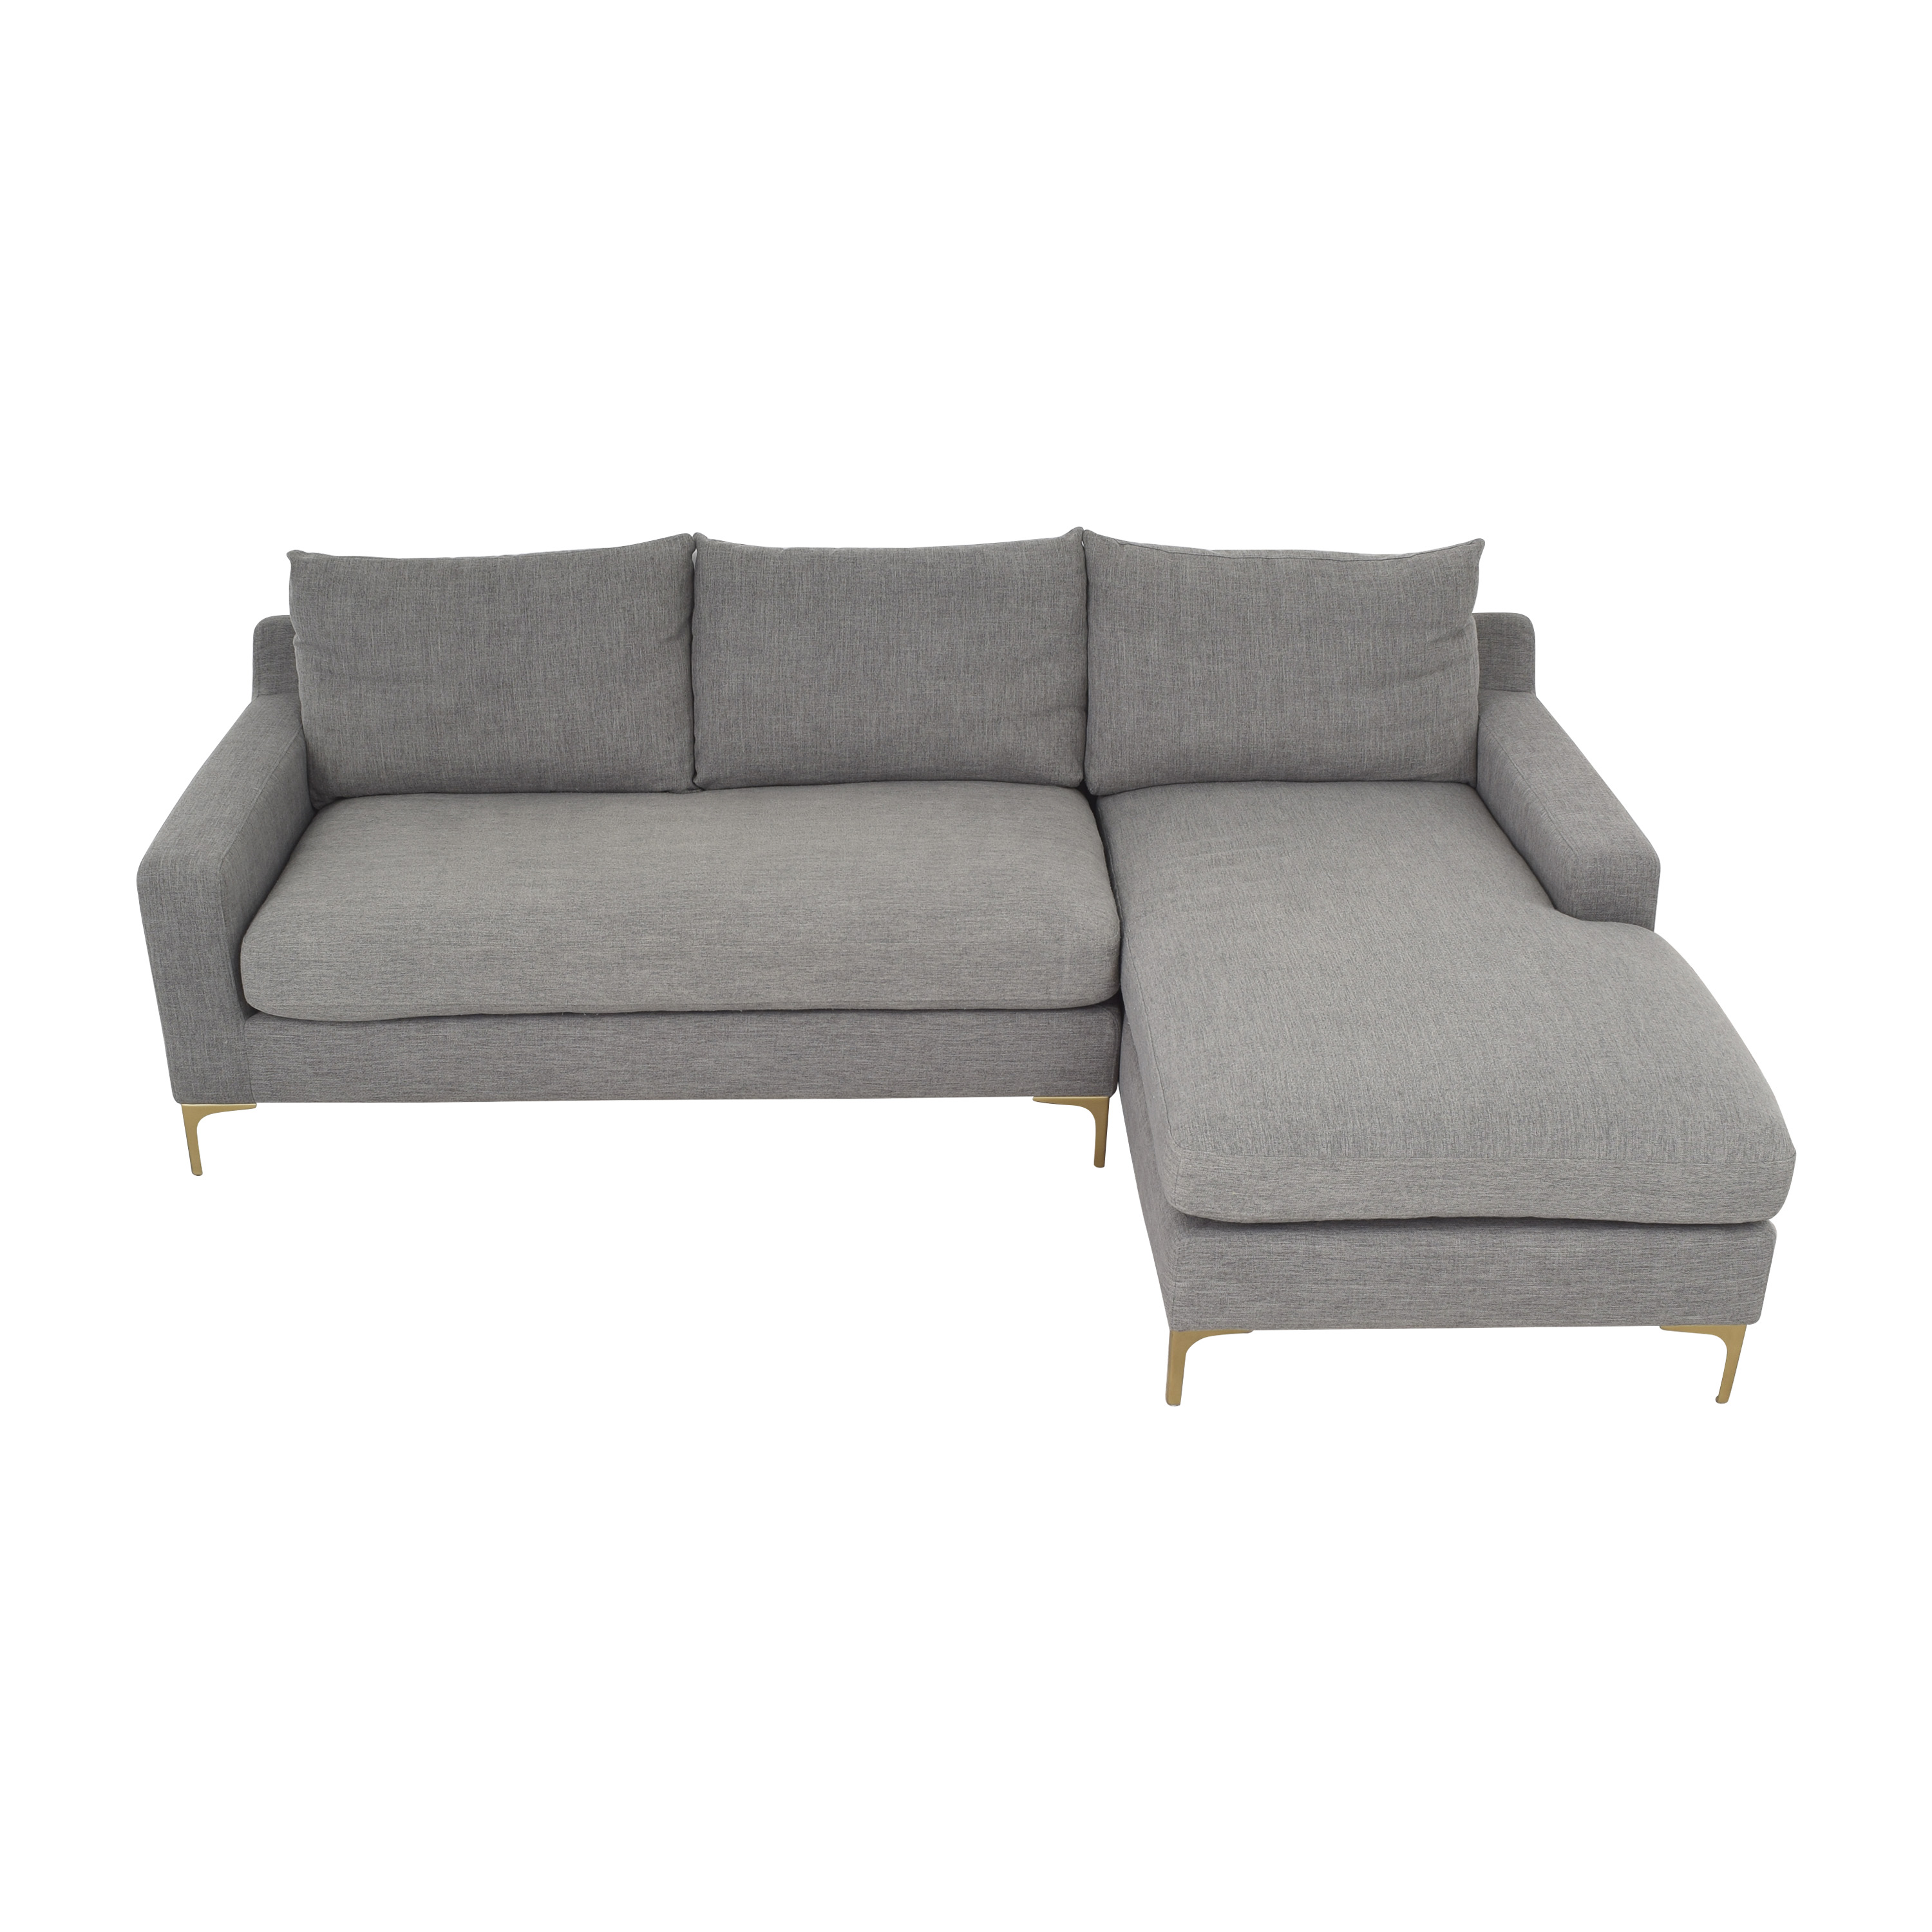 Interior Define Interior Define Sloan Sectional Sofa with Chaise on sale